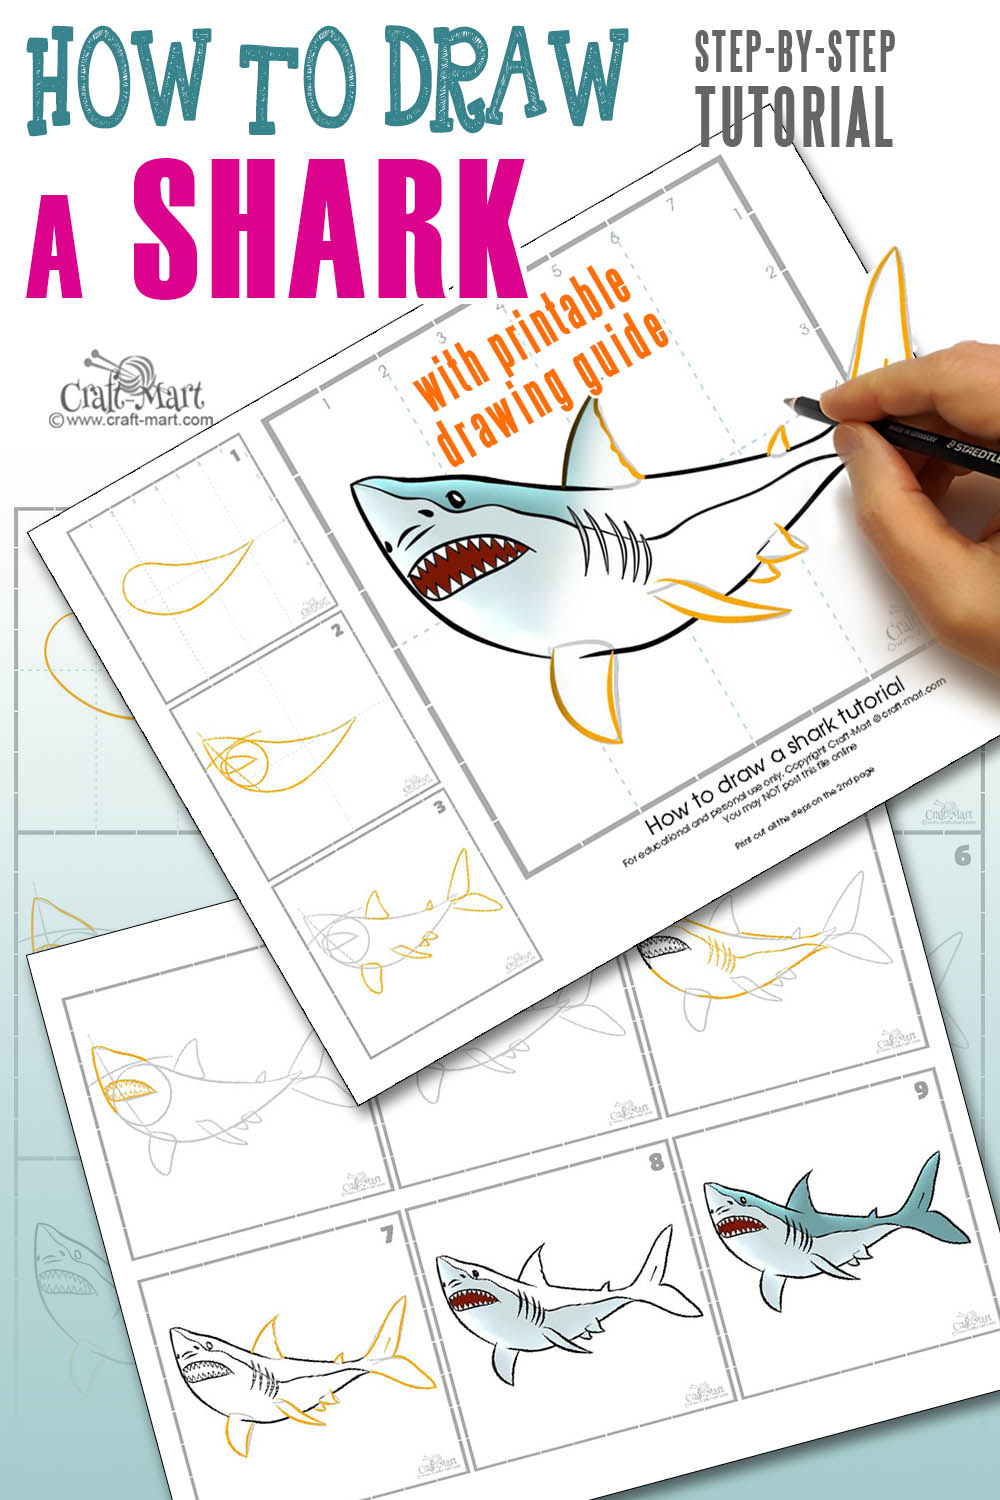 draw a shark step-by-step printable guide that will help beginners to learn all the basics of drawing a shark easy and fast!